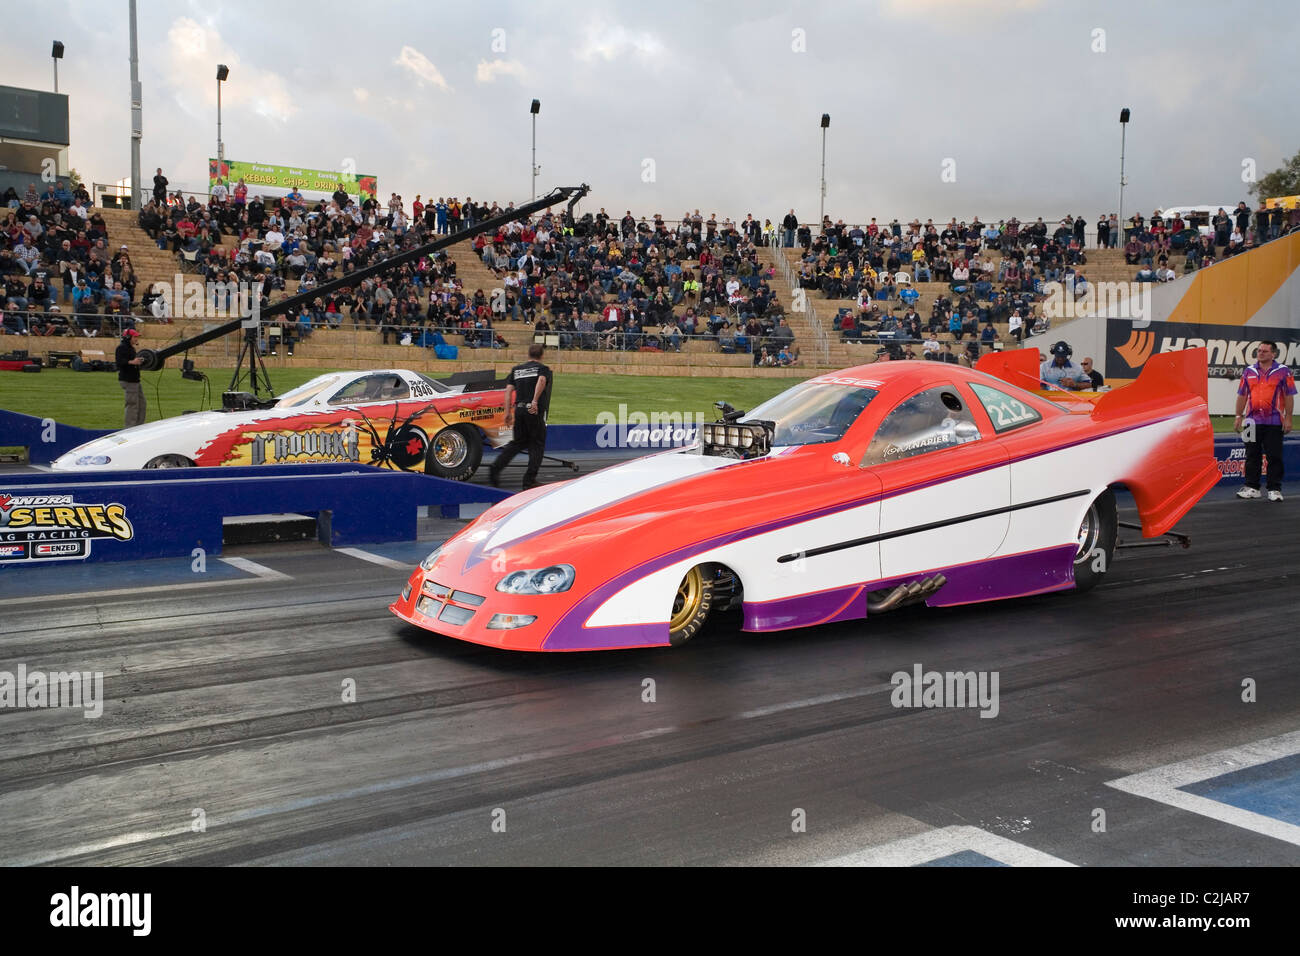 two drag racing cars line up ready to race at the track Stock Photo ...